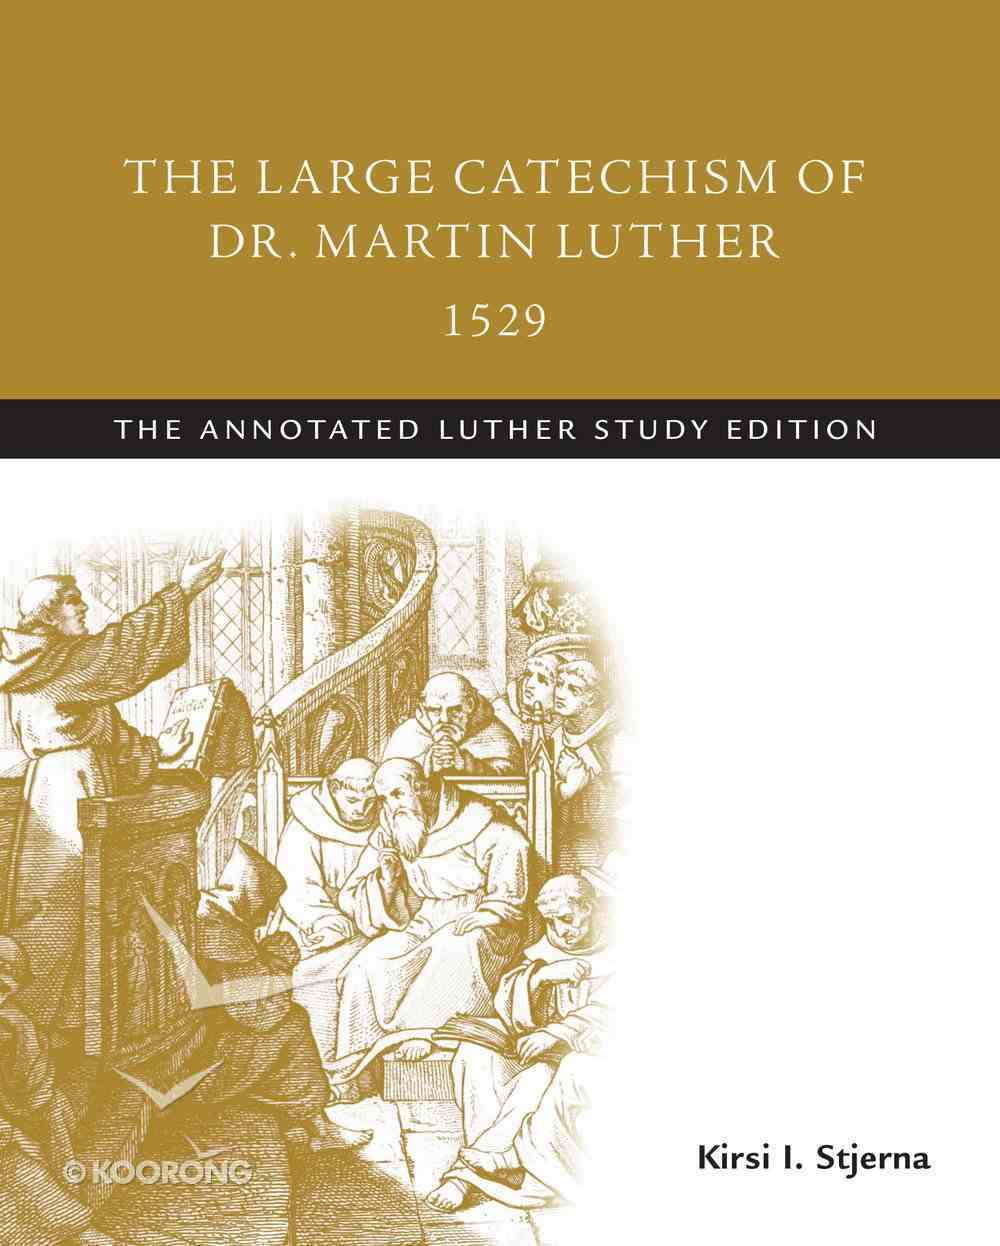 The Large Catechism of Dr. Martin Luther, 1529 (The Annotated Luther Series) eBook